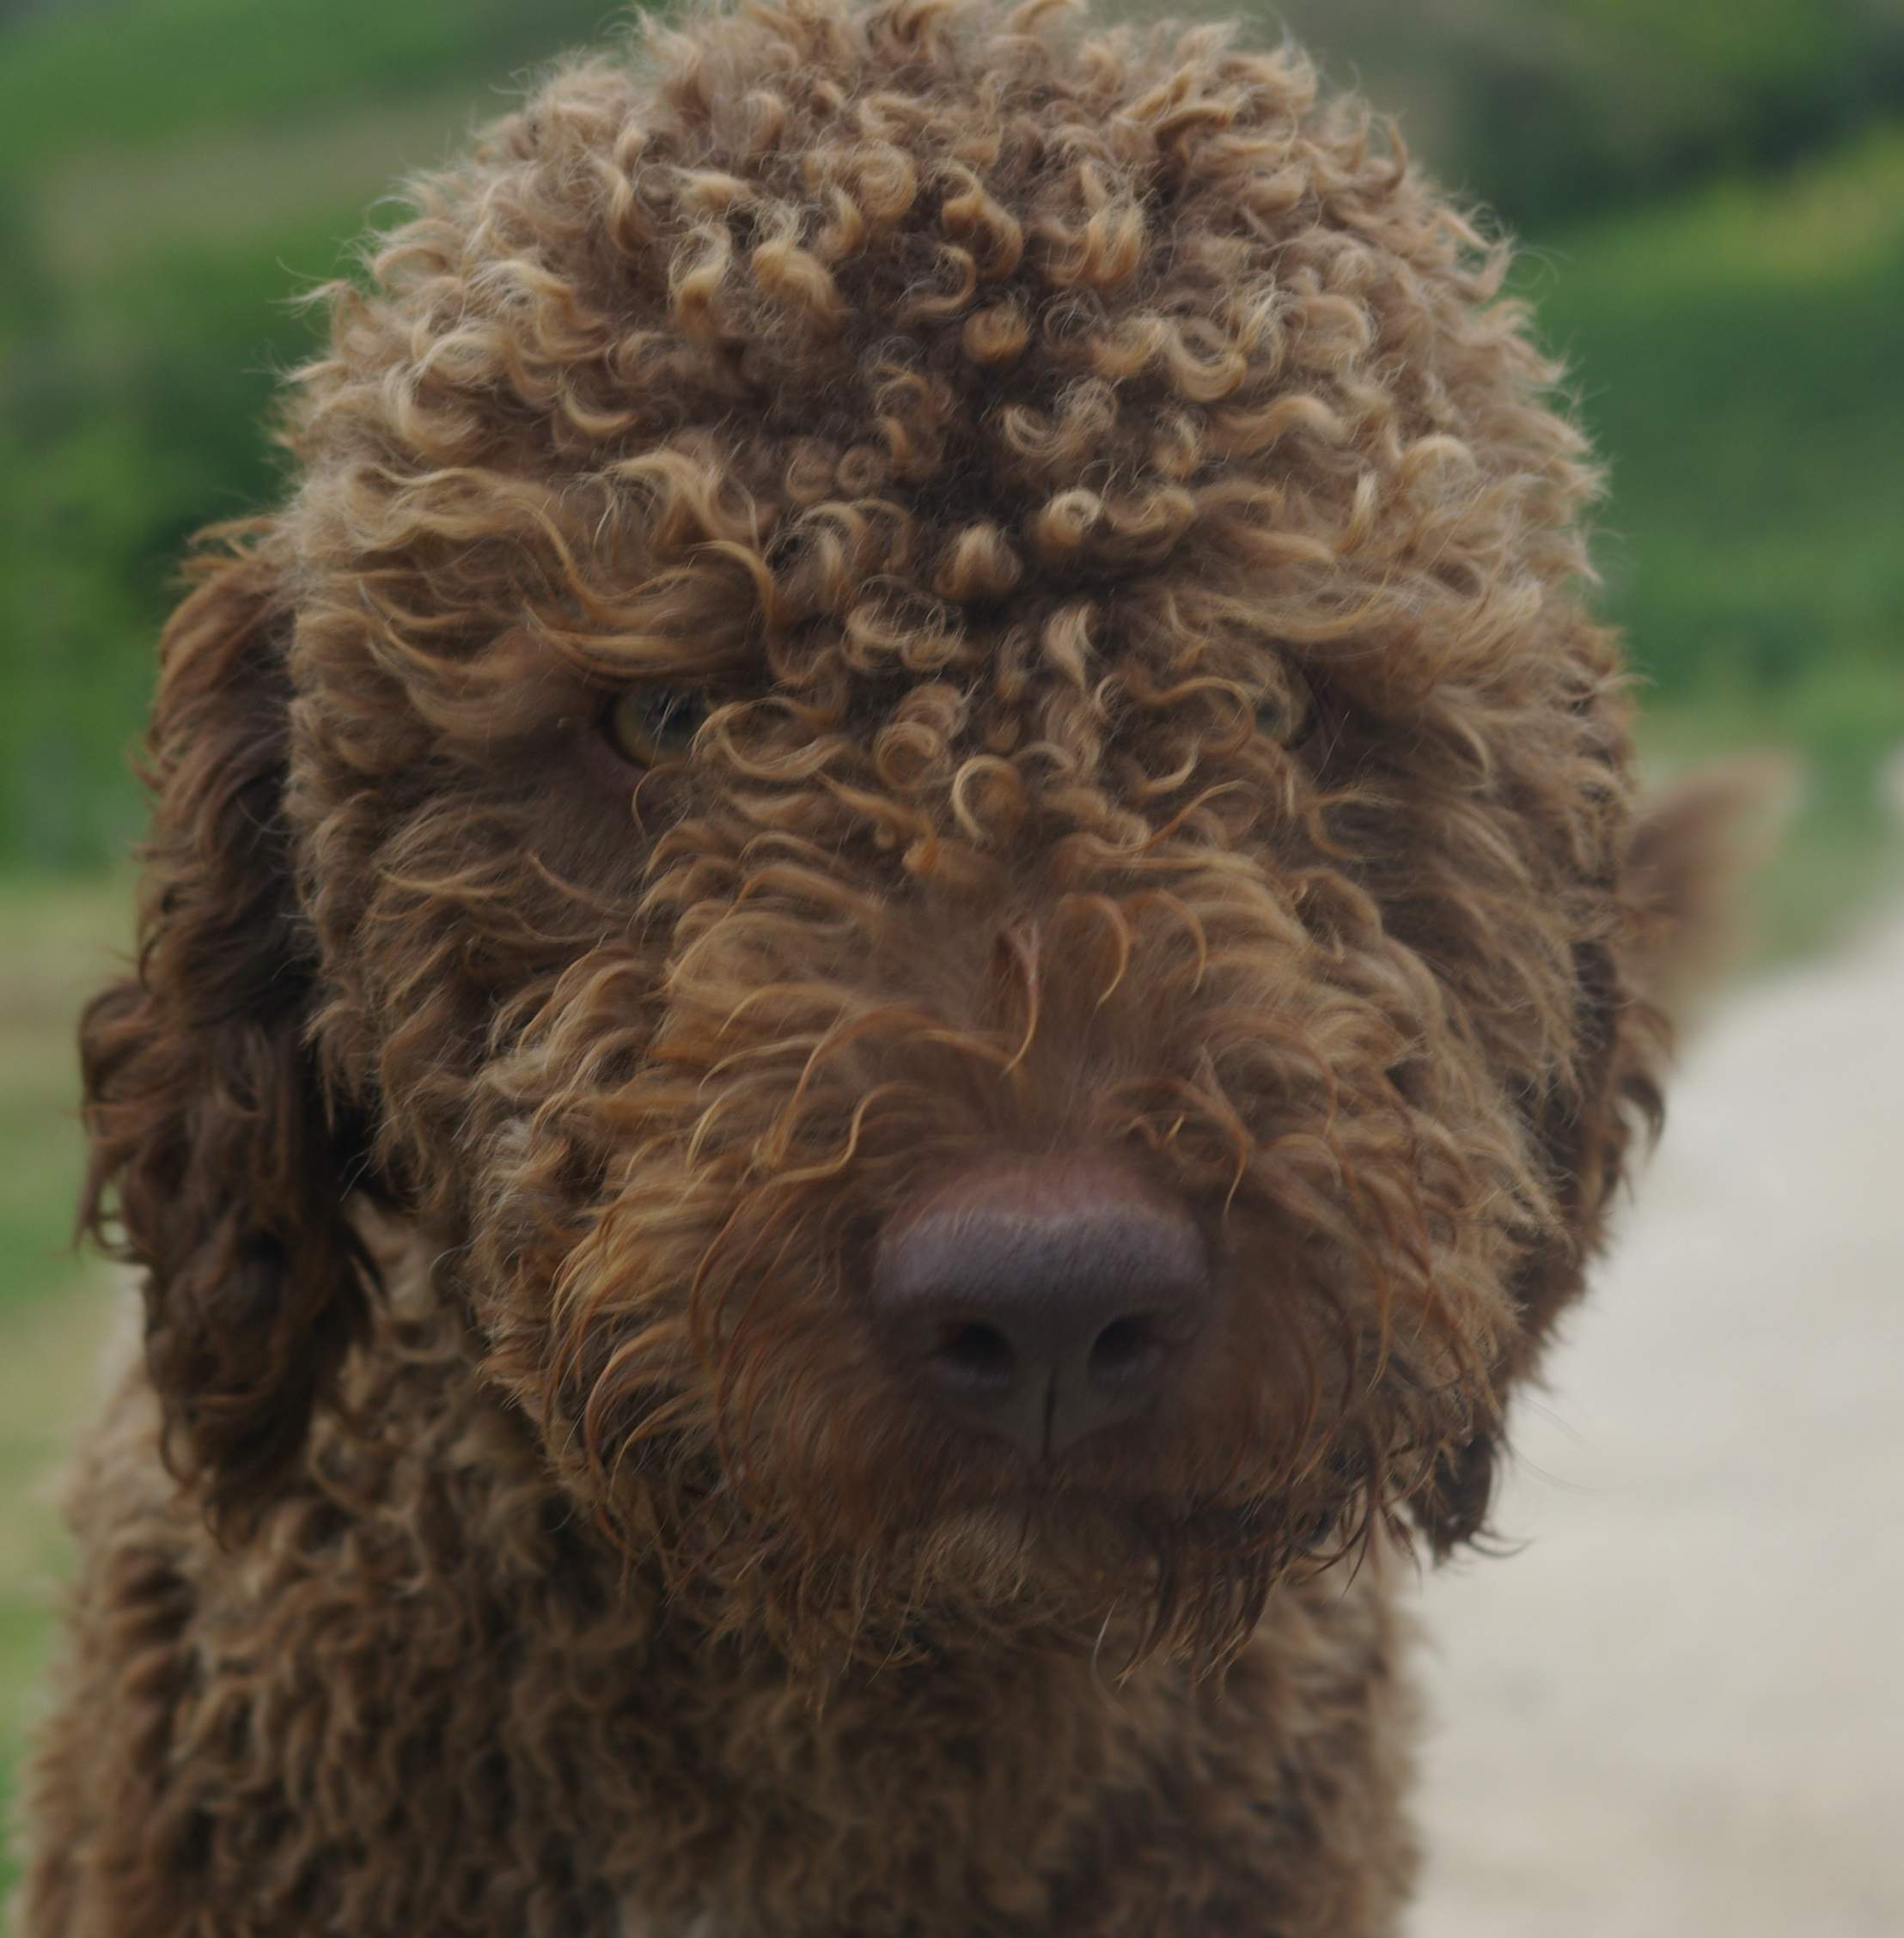 Lagotto Romagnolo Dog Face Photo And Wallpaper. Beautiful